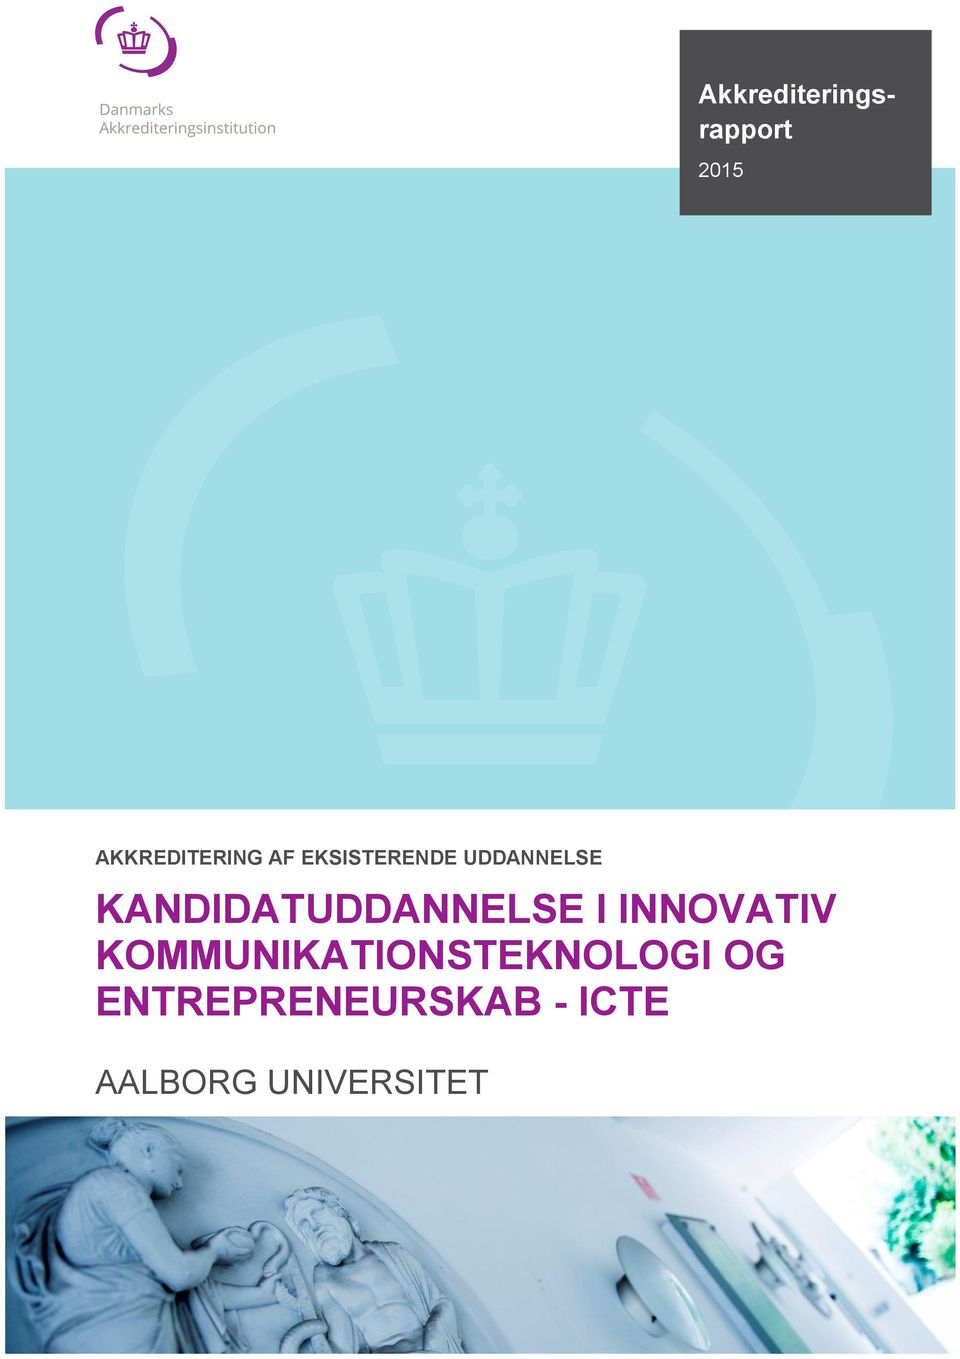 KANDIDATUDDANNELSE I INNOVATIV